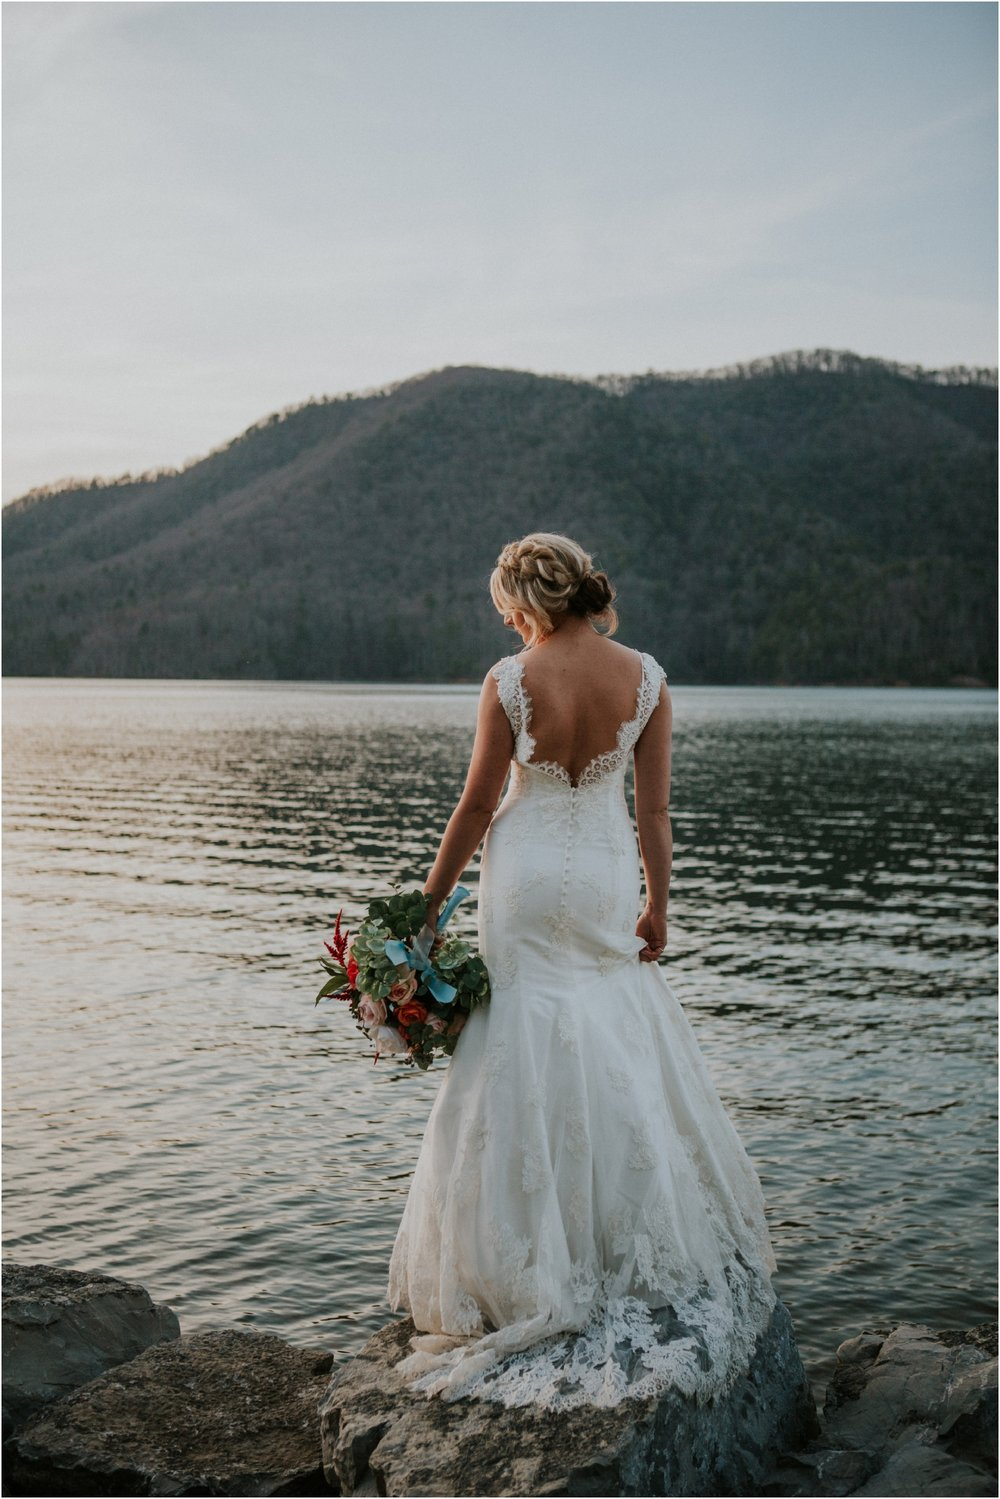 watauga-lake--bohemian-bridal-styled-session-northeast-tennessee-wedding-elopement-photography_0012.jpg